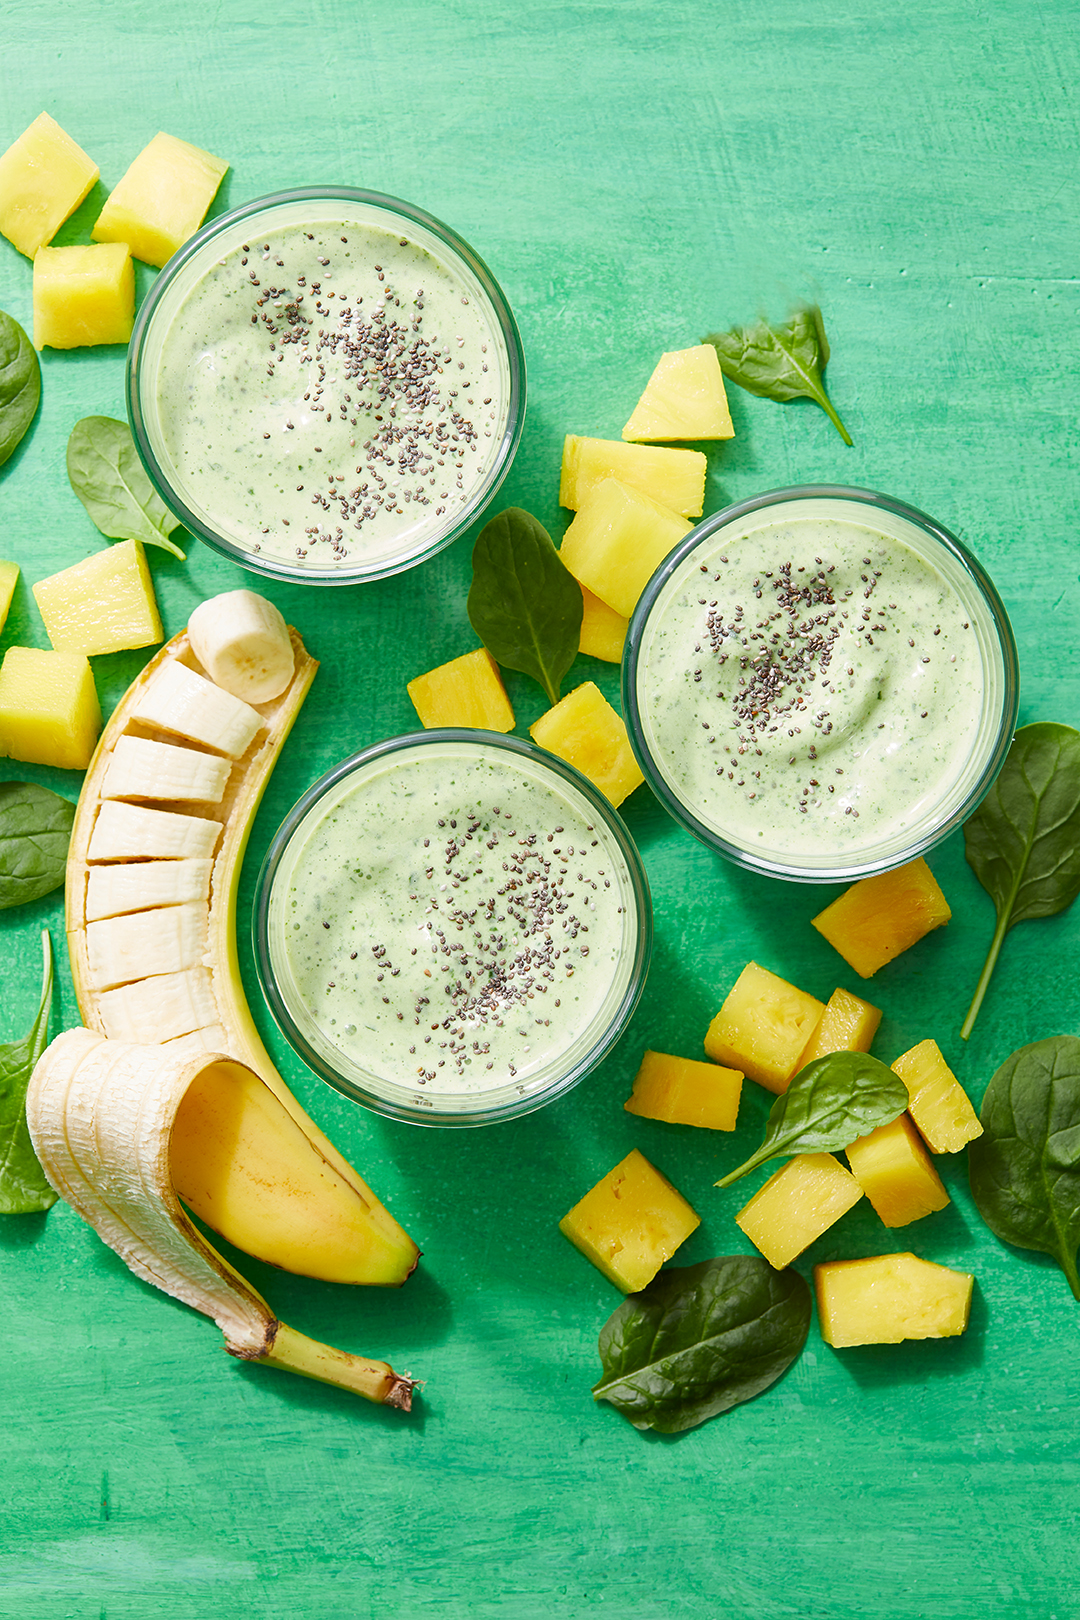 Pineapple-Spinach Smoothies with sliced banana. Pineapple-Spinach Smoothies R271011